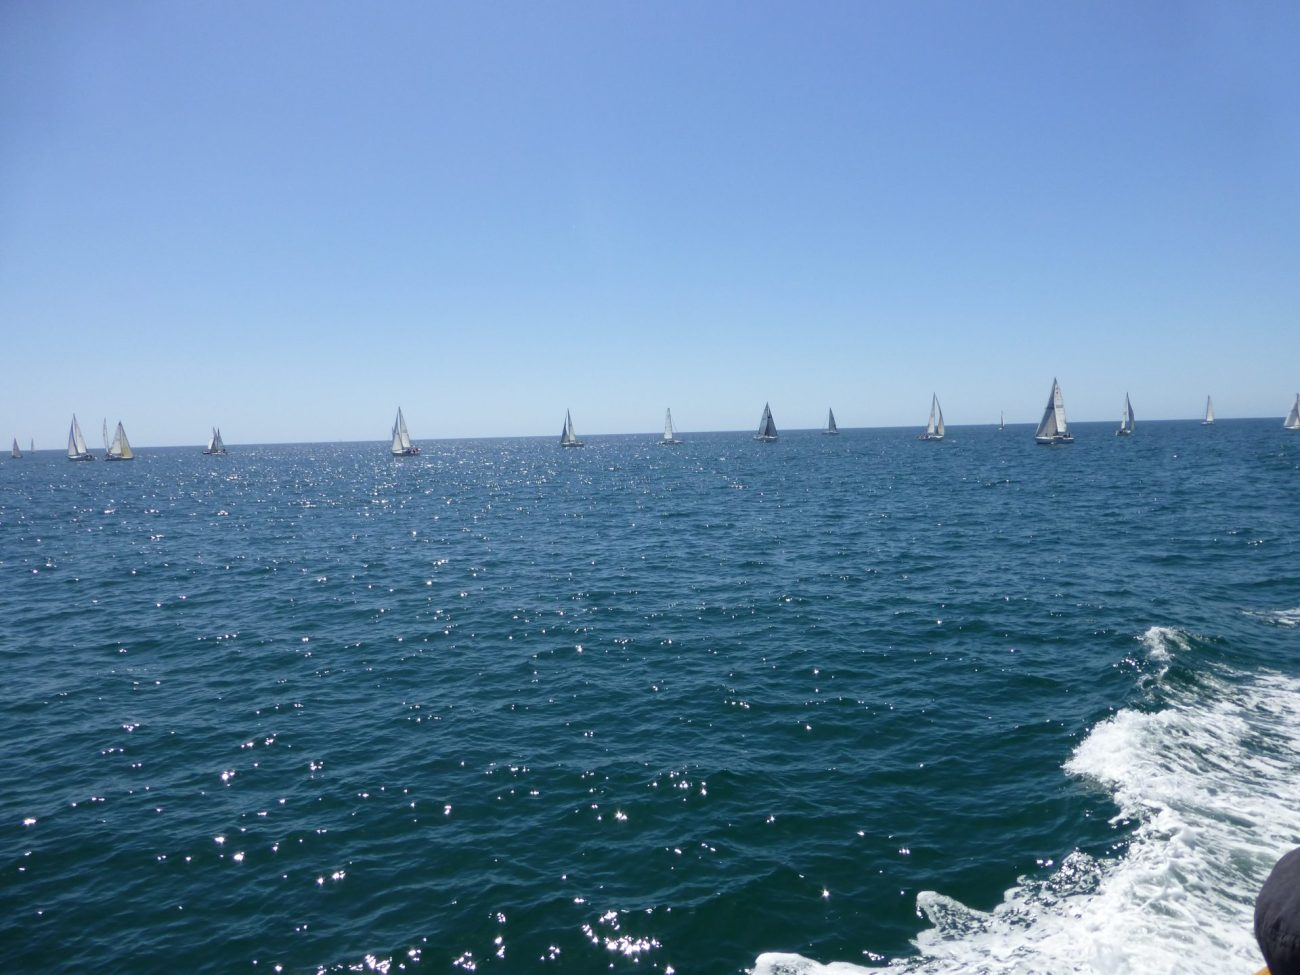 Sailboats from the whale watching